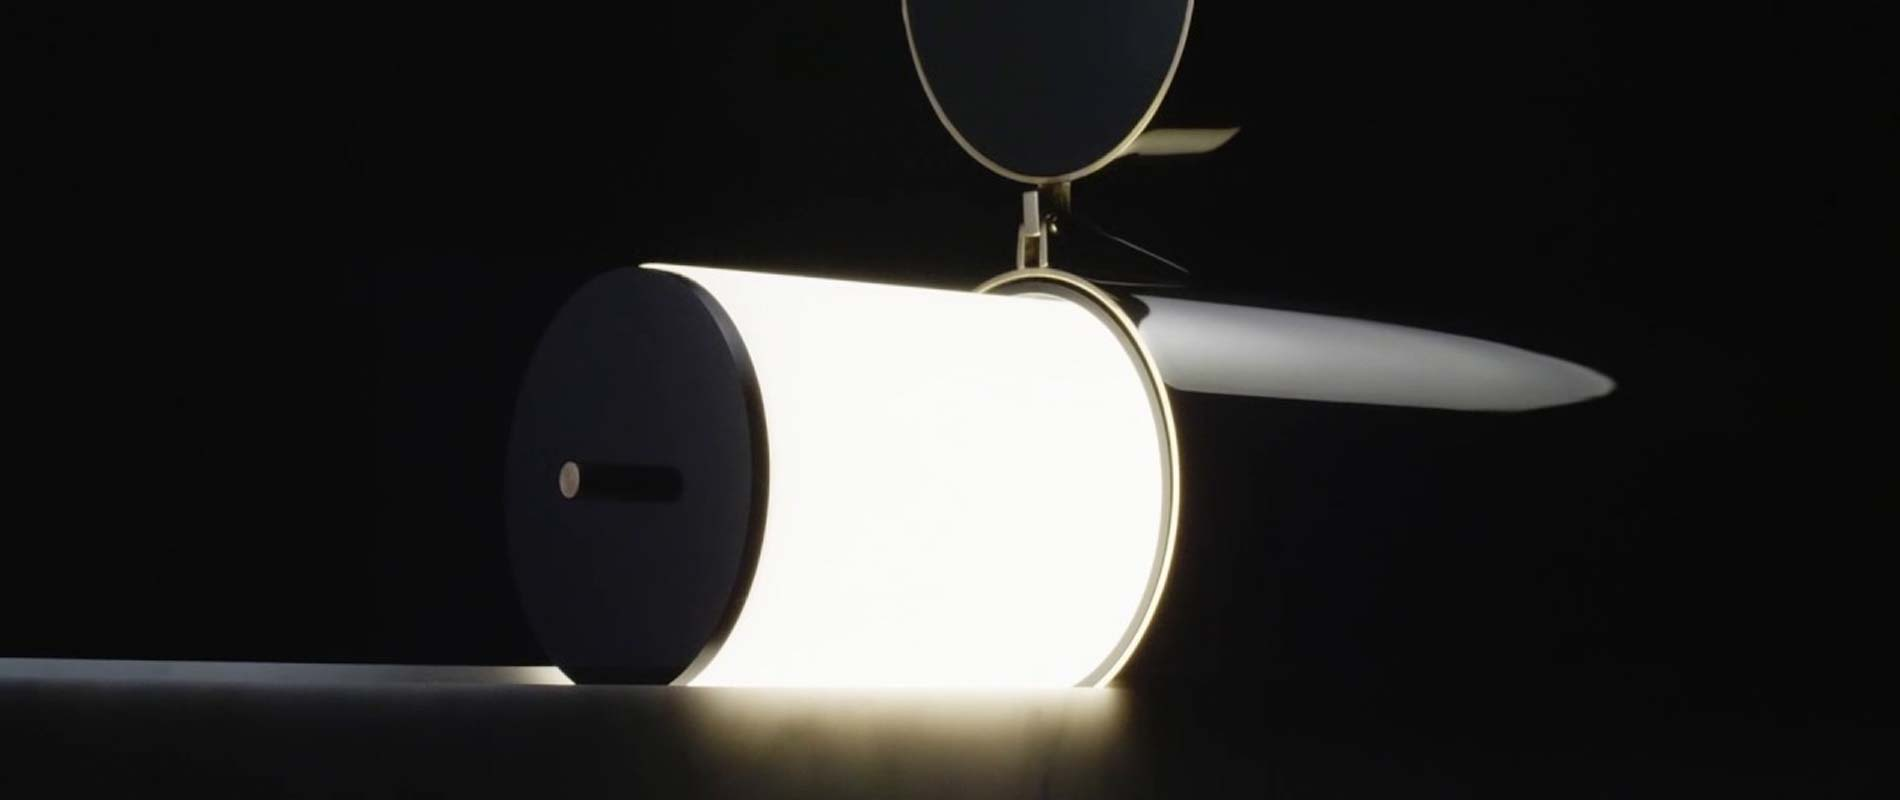 dcw editions, isp lamp